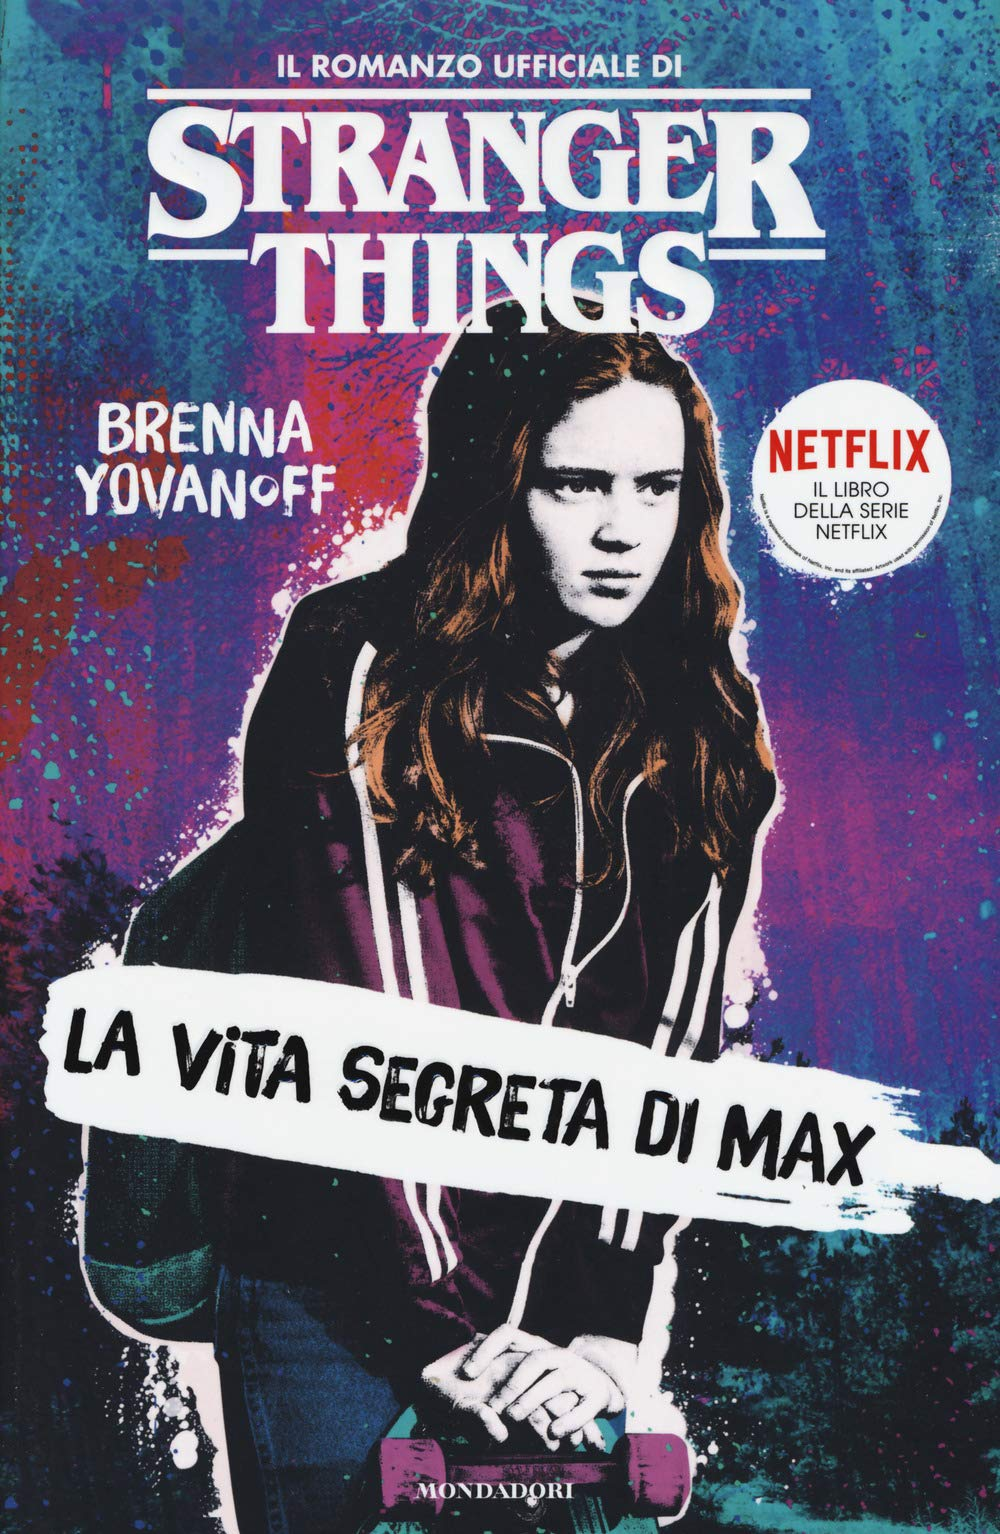 La vita segreta di Max. Il romanzo ufficiale di Stranger Things: Amazon.it:  Yovanoff, Brenna, Piemonte, M.: Libri